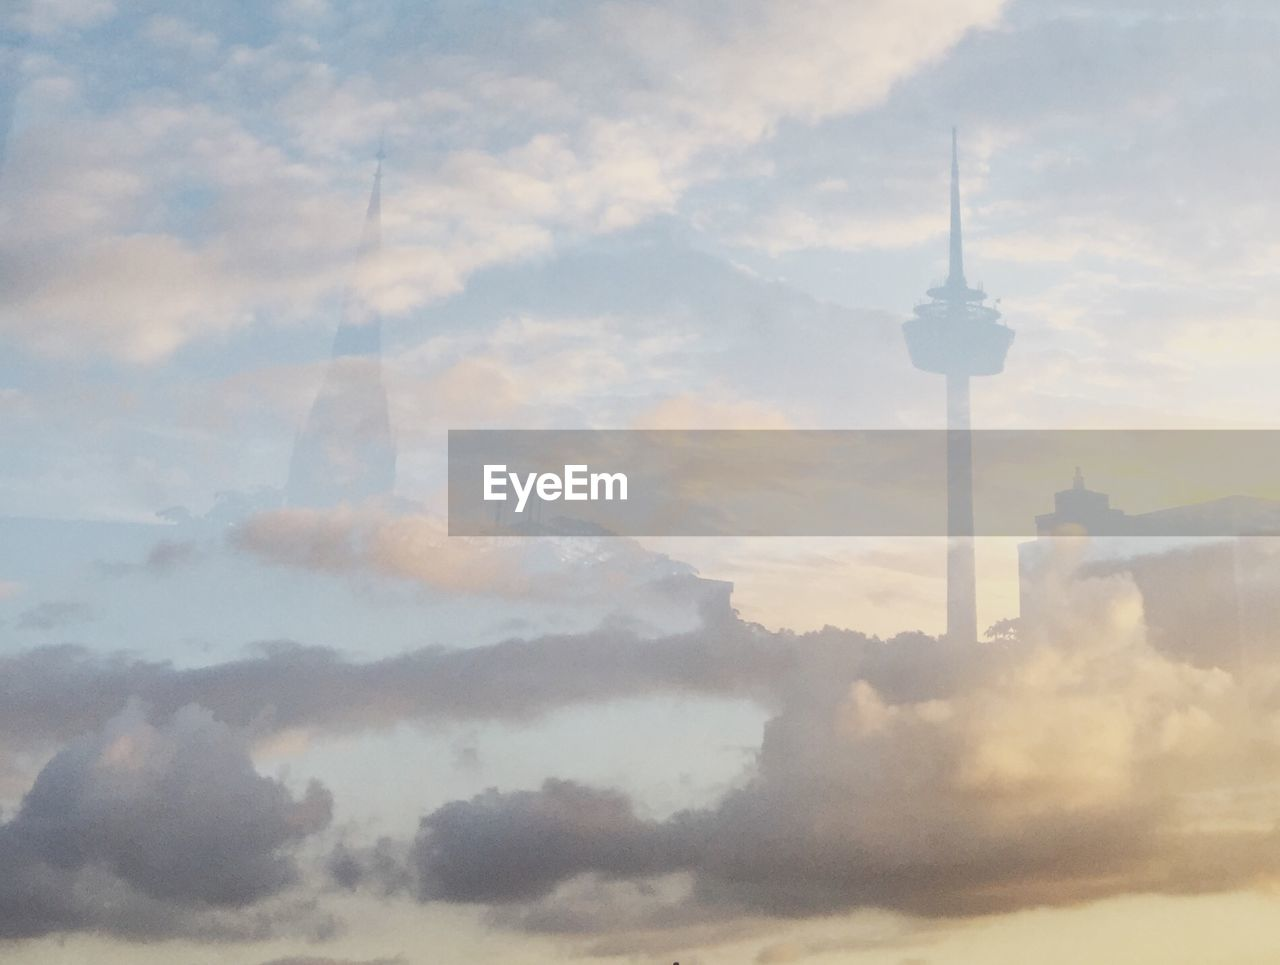 cloud - sky, sky, architecture, built structure, tower, building exterior, tall - high, building, no people, communication, spire, travel destinations, travel, nature, city, fog, tourism, sphere, outdoors, global communications, skyscraper, office building exterior